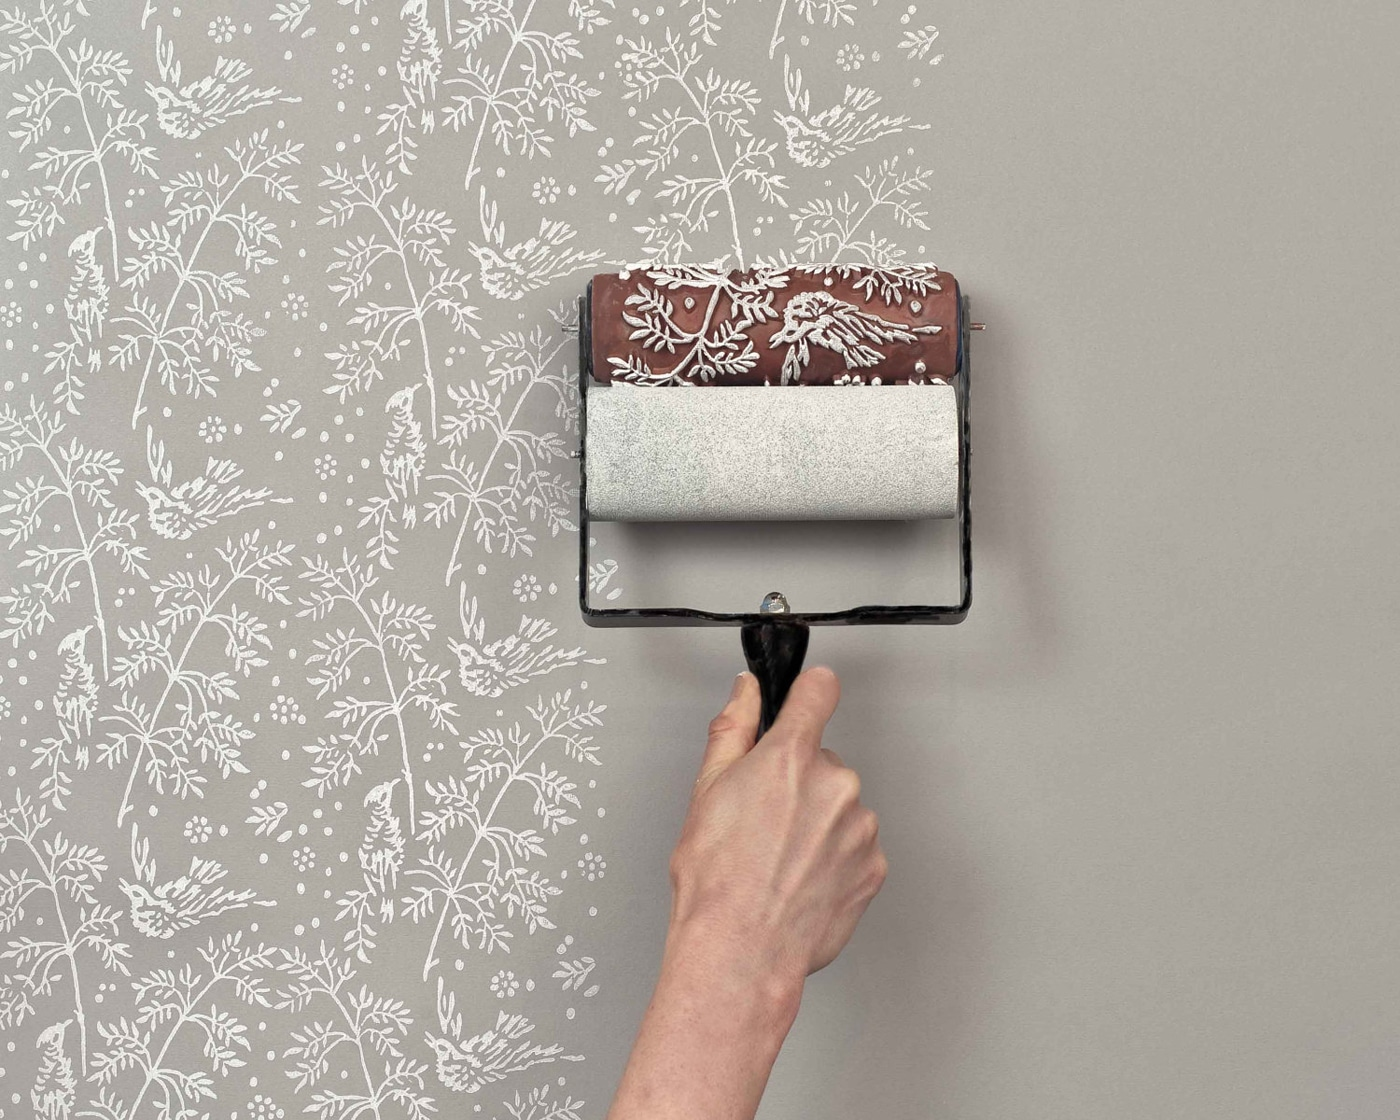 paint-roller-looks-like-wallpaper